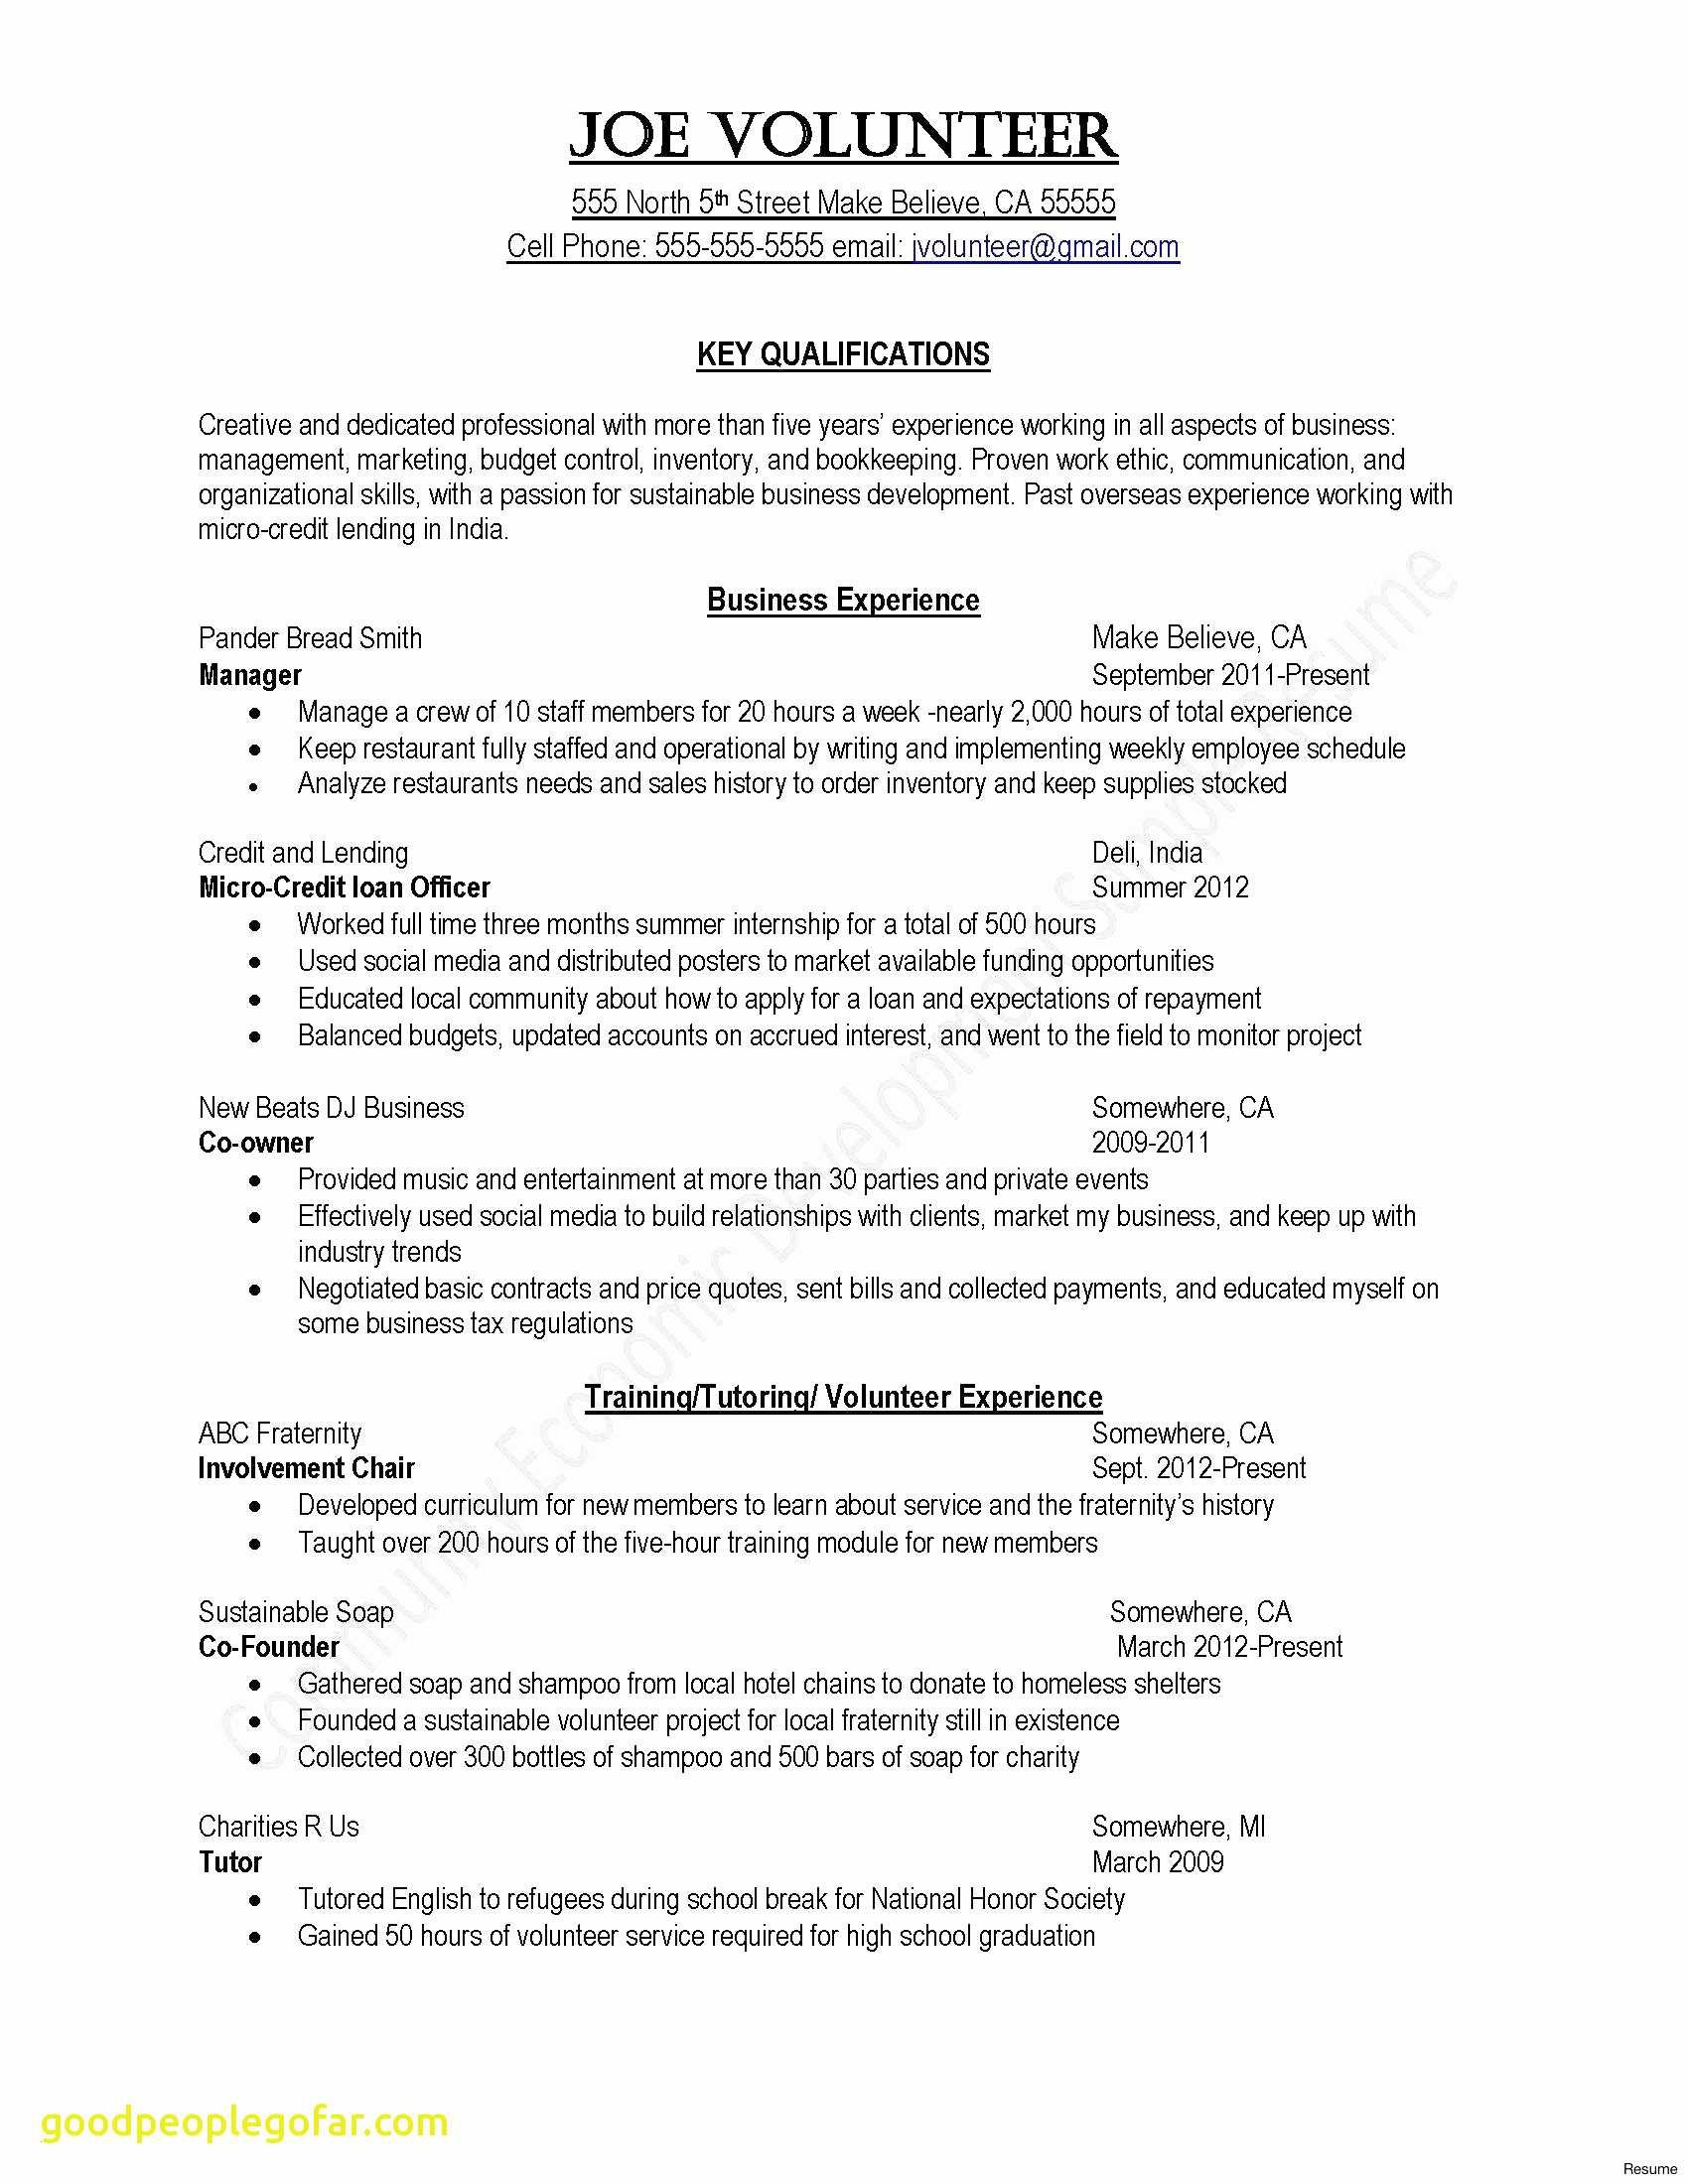 Accountant Resume Examples - Accounting Internship Resume Samples Unique Sample College